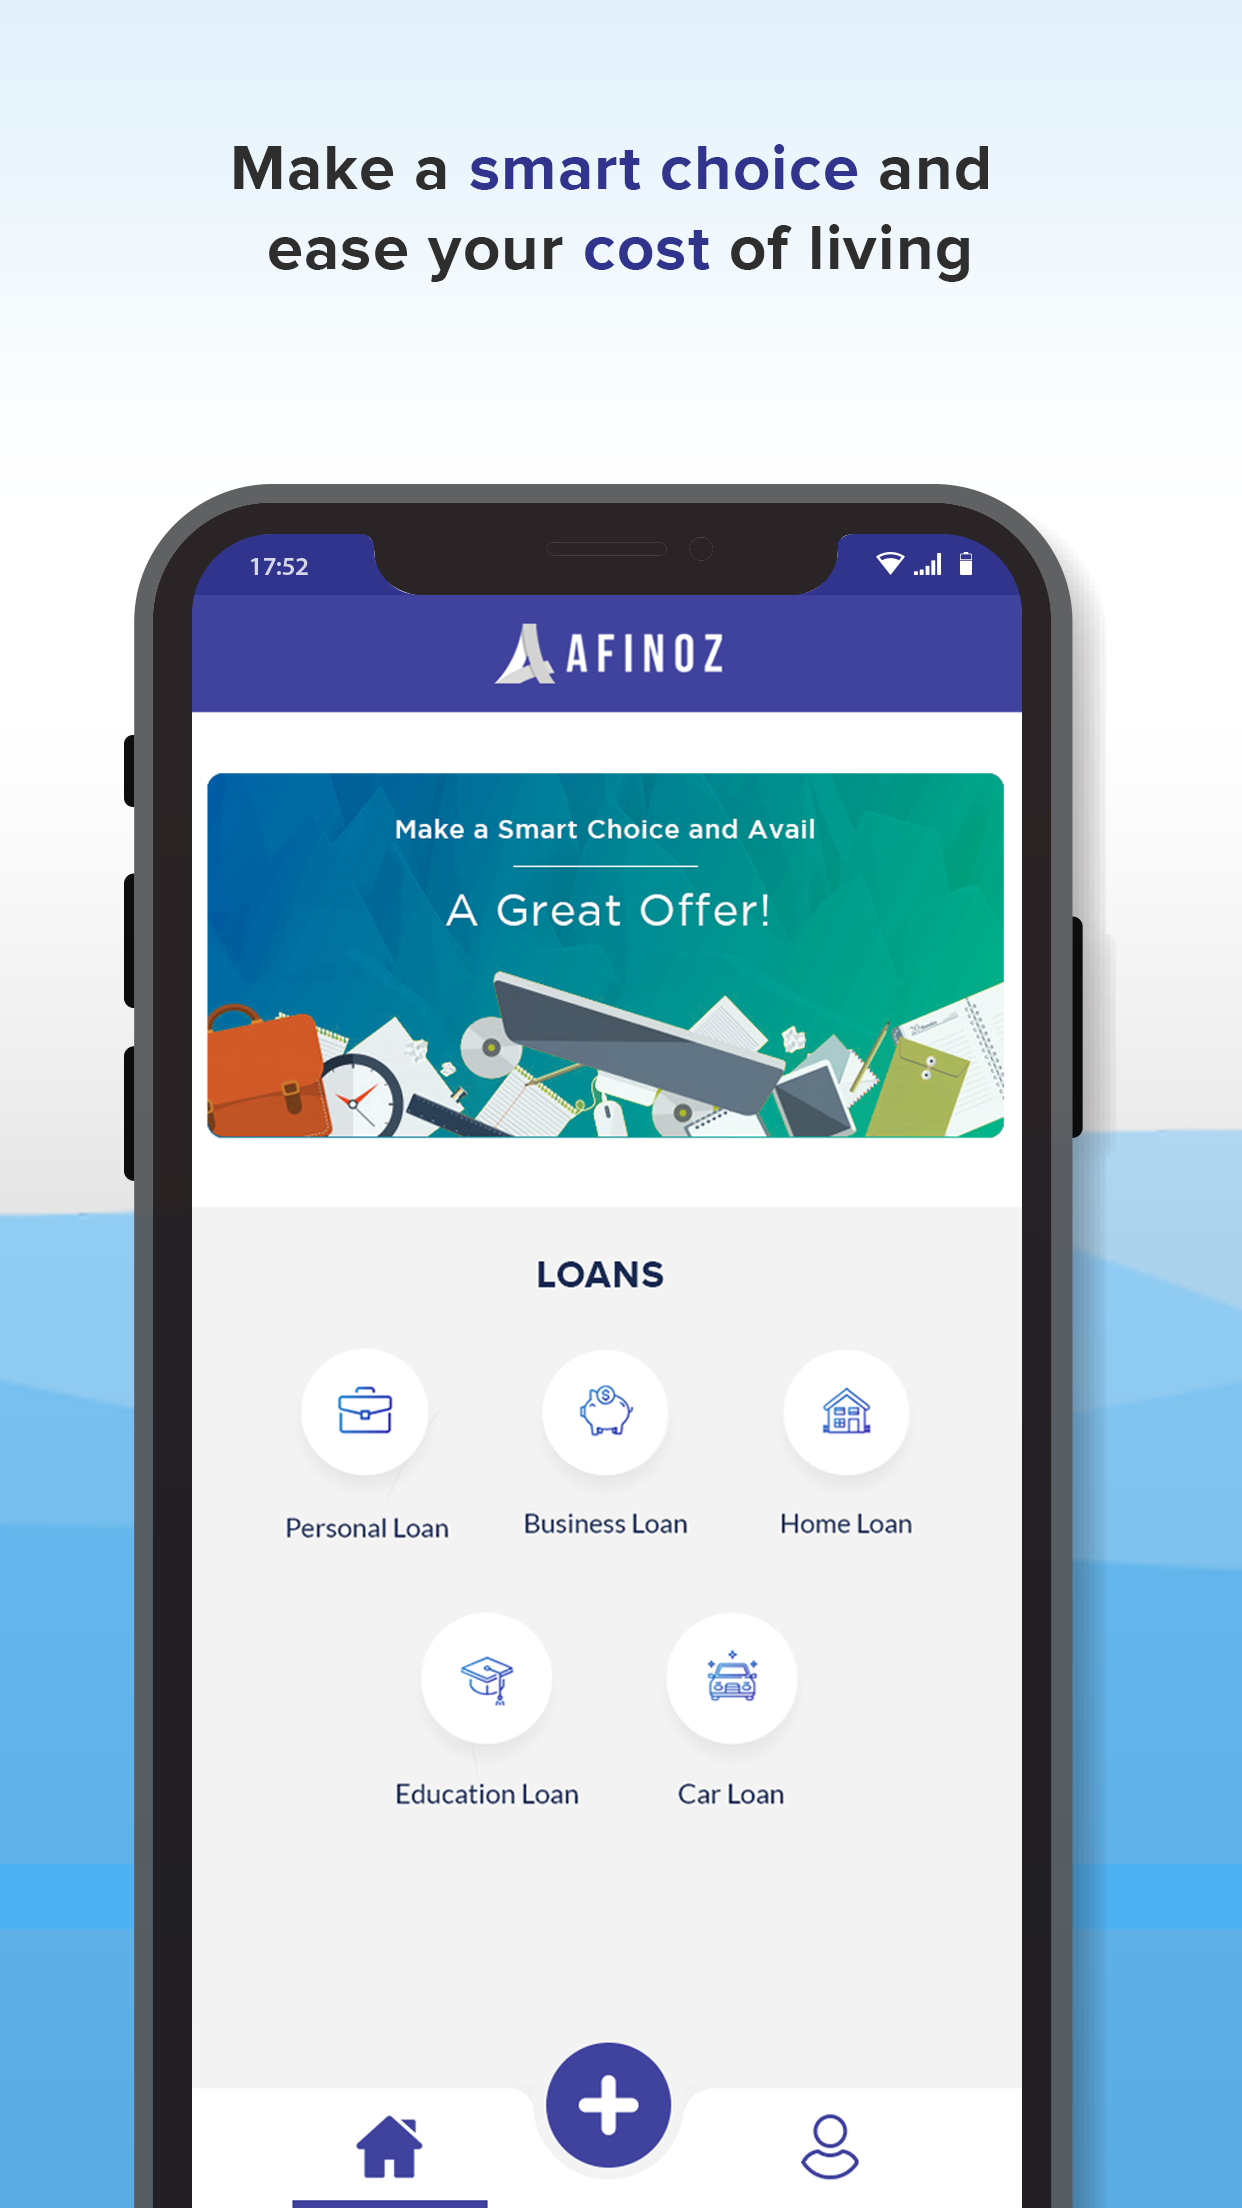 Afinoz - Personal Loan, business Loan, Home Loan